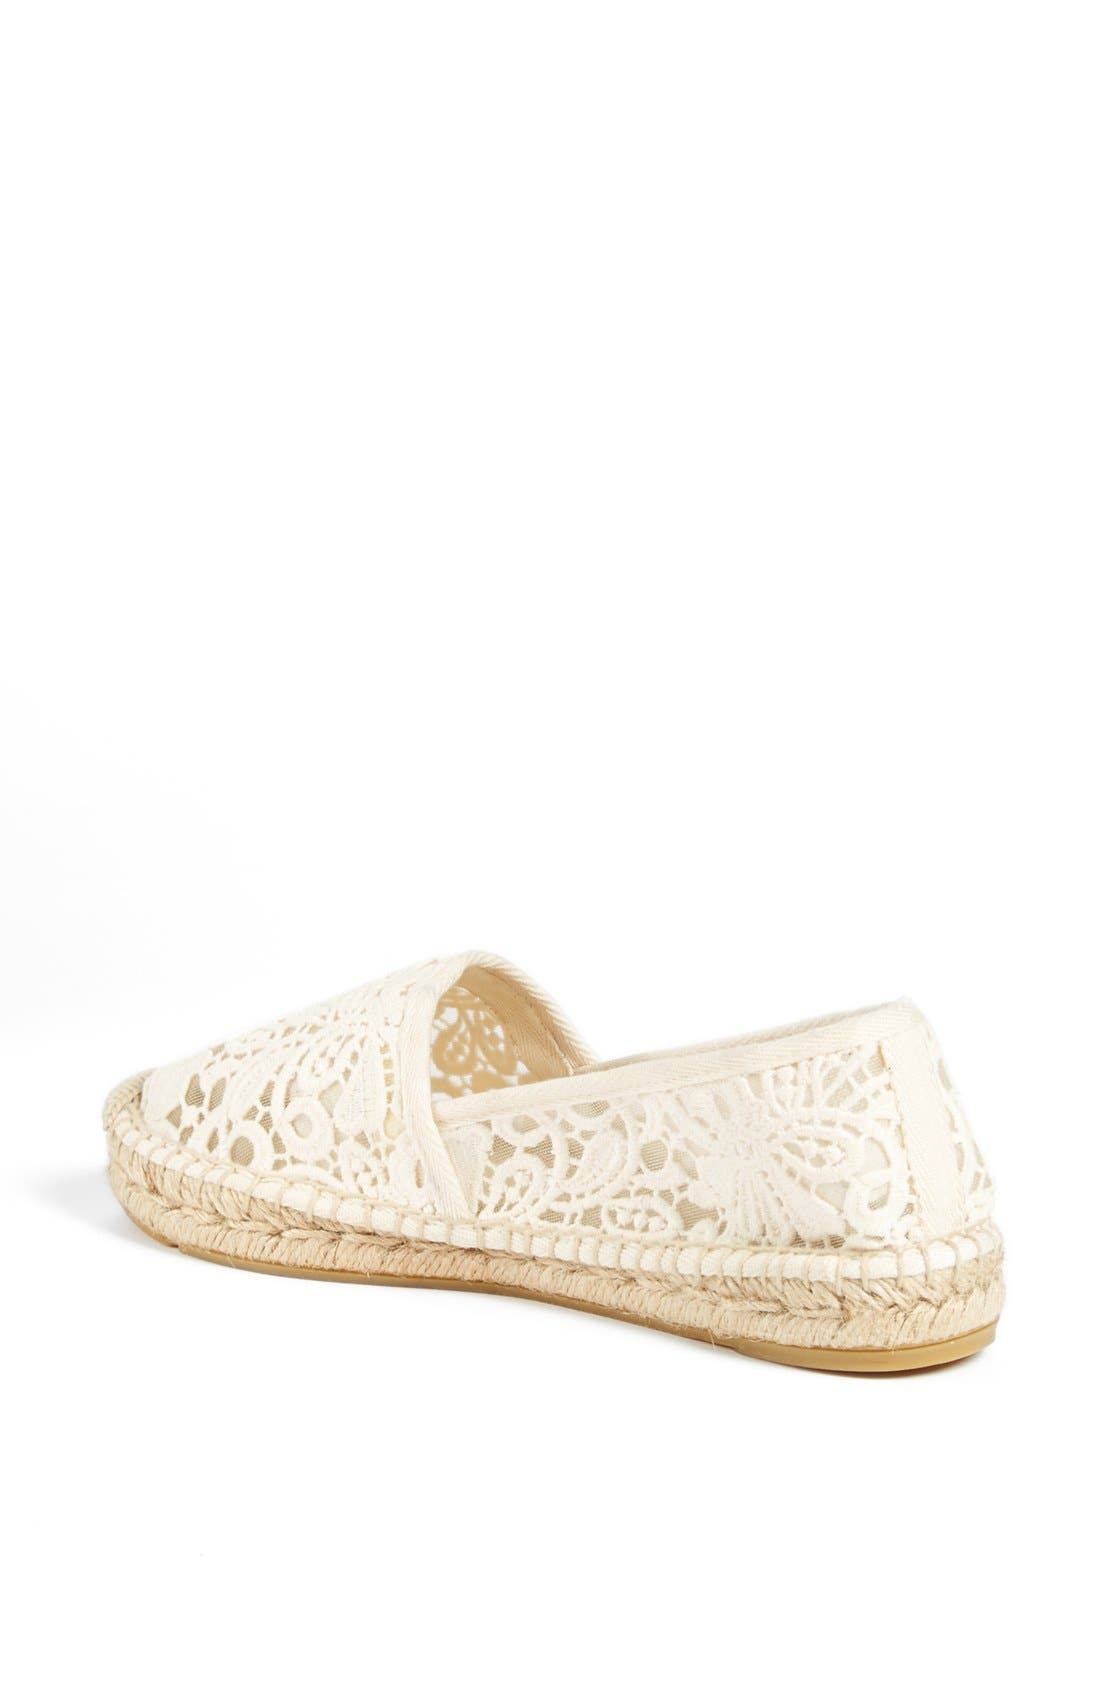 Alternate Image 2  - Tory Burch 'Abbe' Espadrille